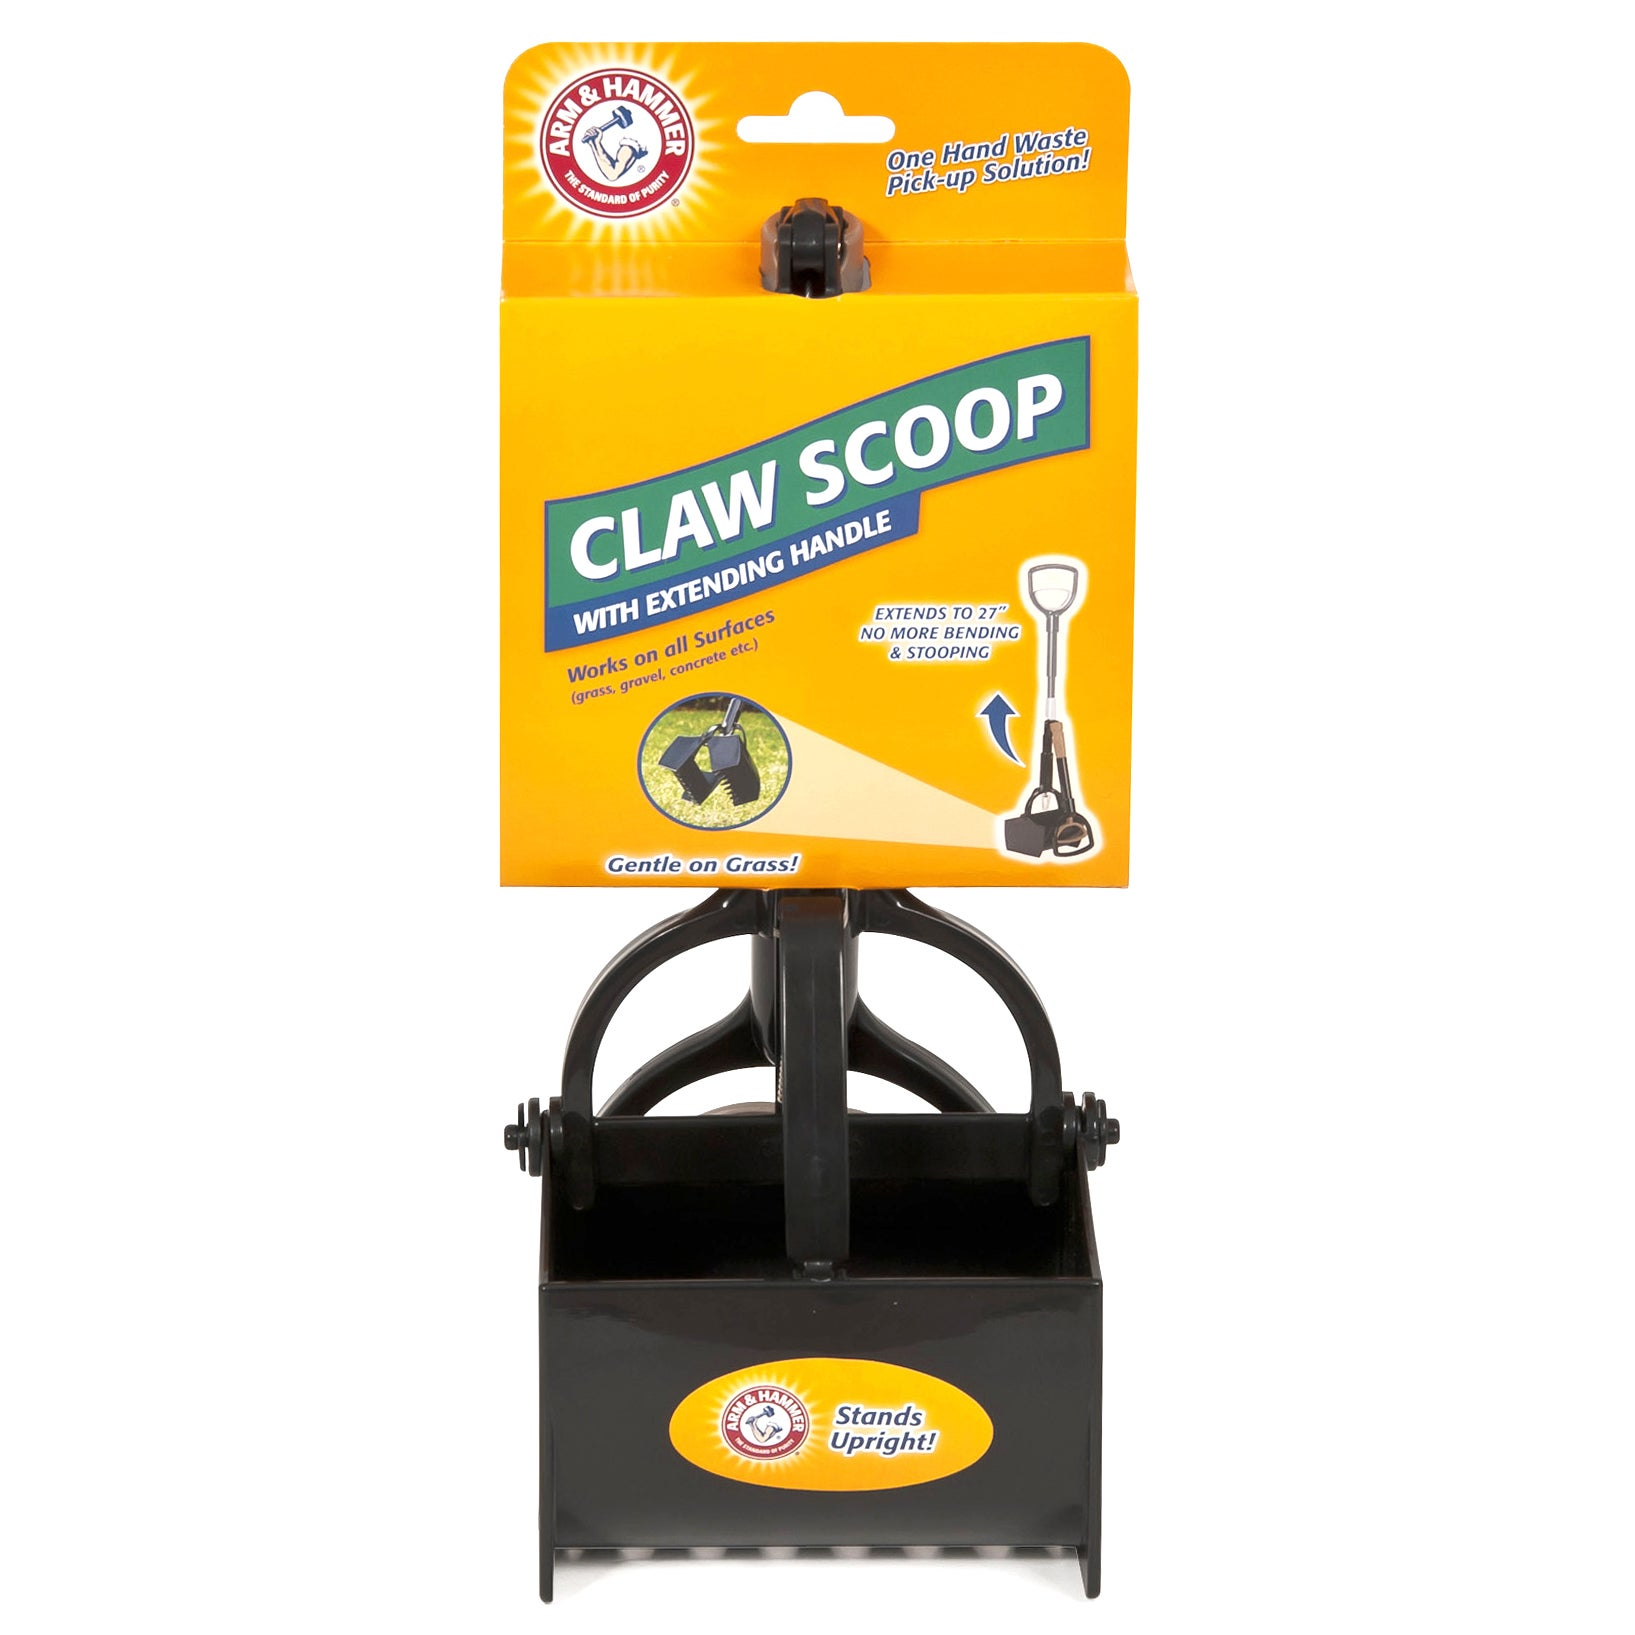 Arm & Hammer Claw Scoop (Black/Penny)